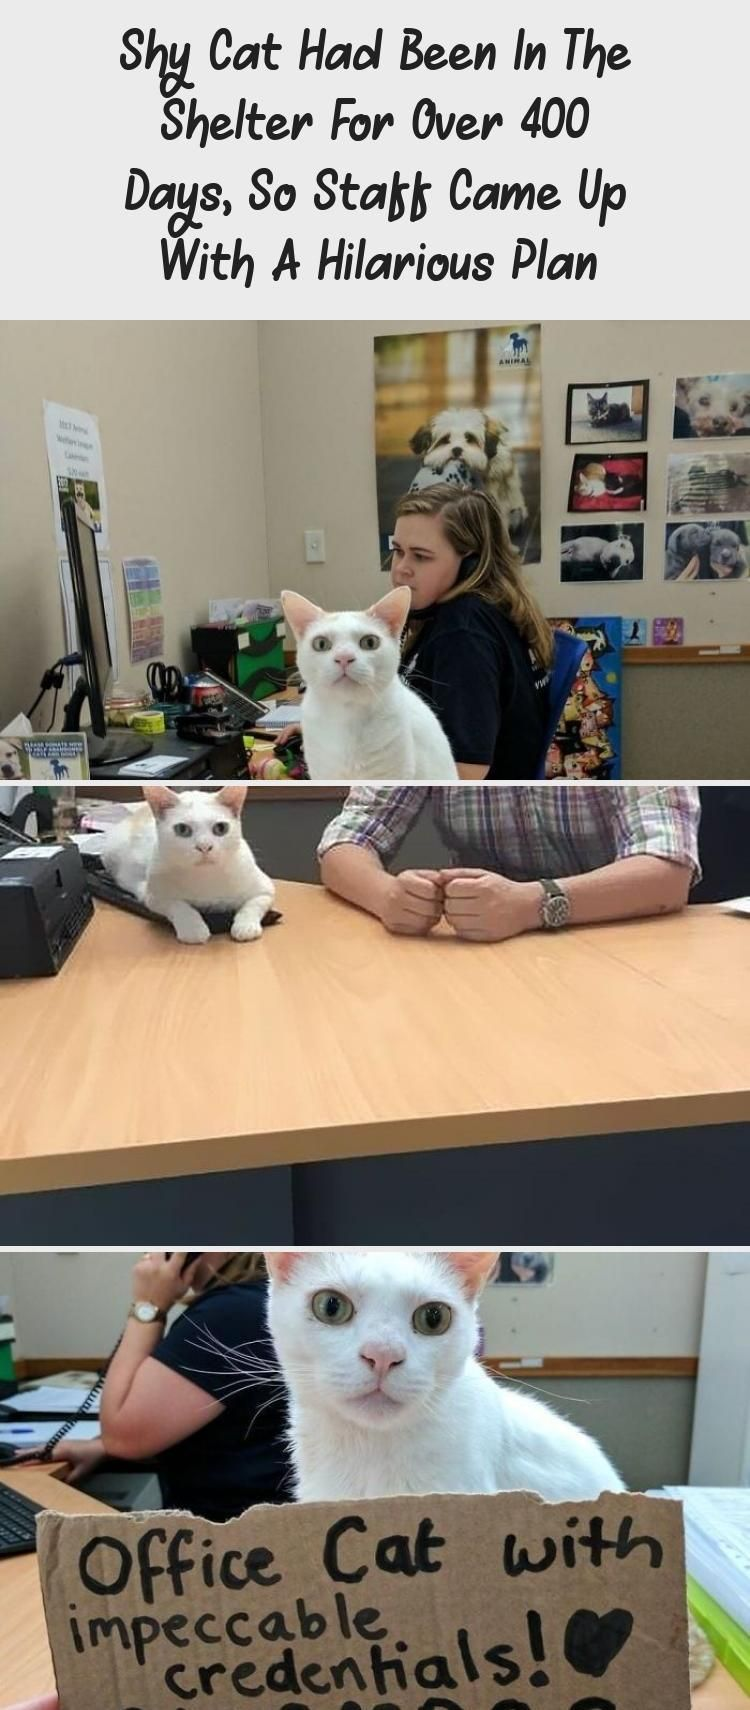 Shy Cat Had Been In The Shelter For Over 400 Days So Staff Came Up With A Hilarious Plan